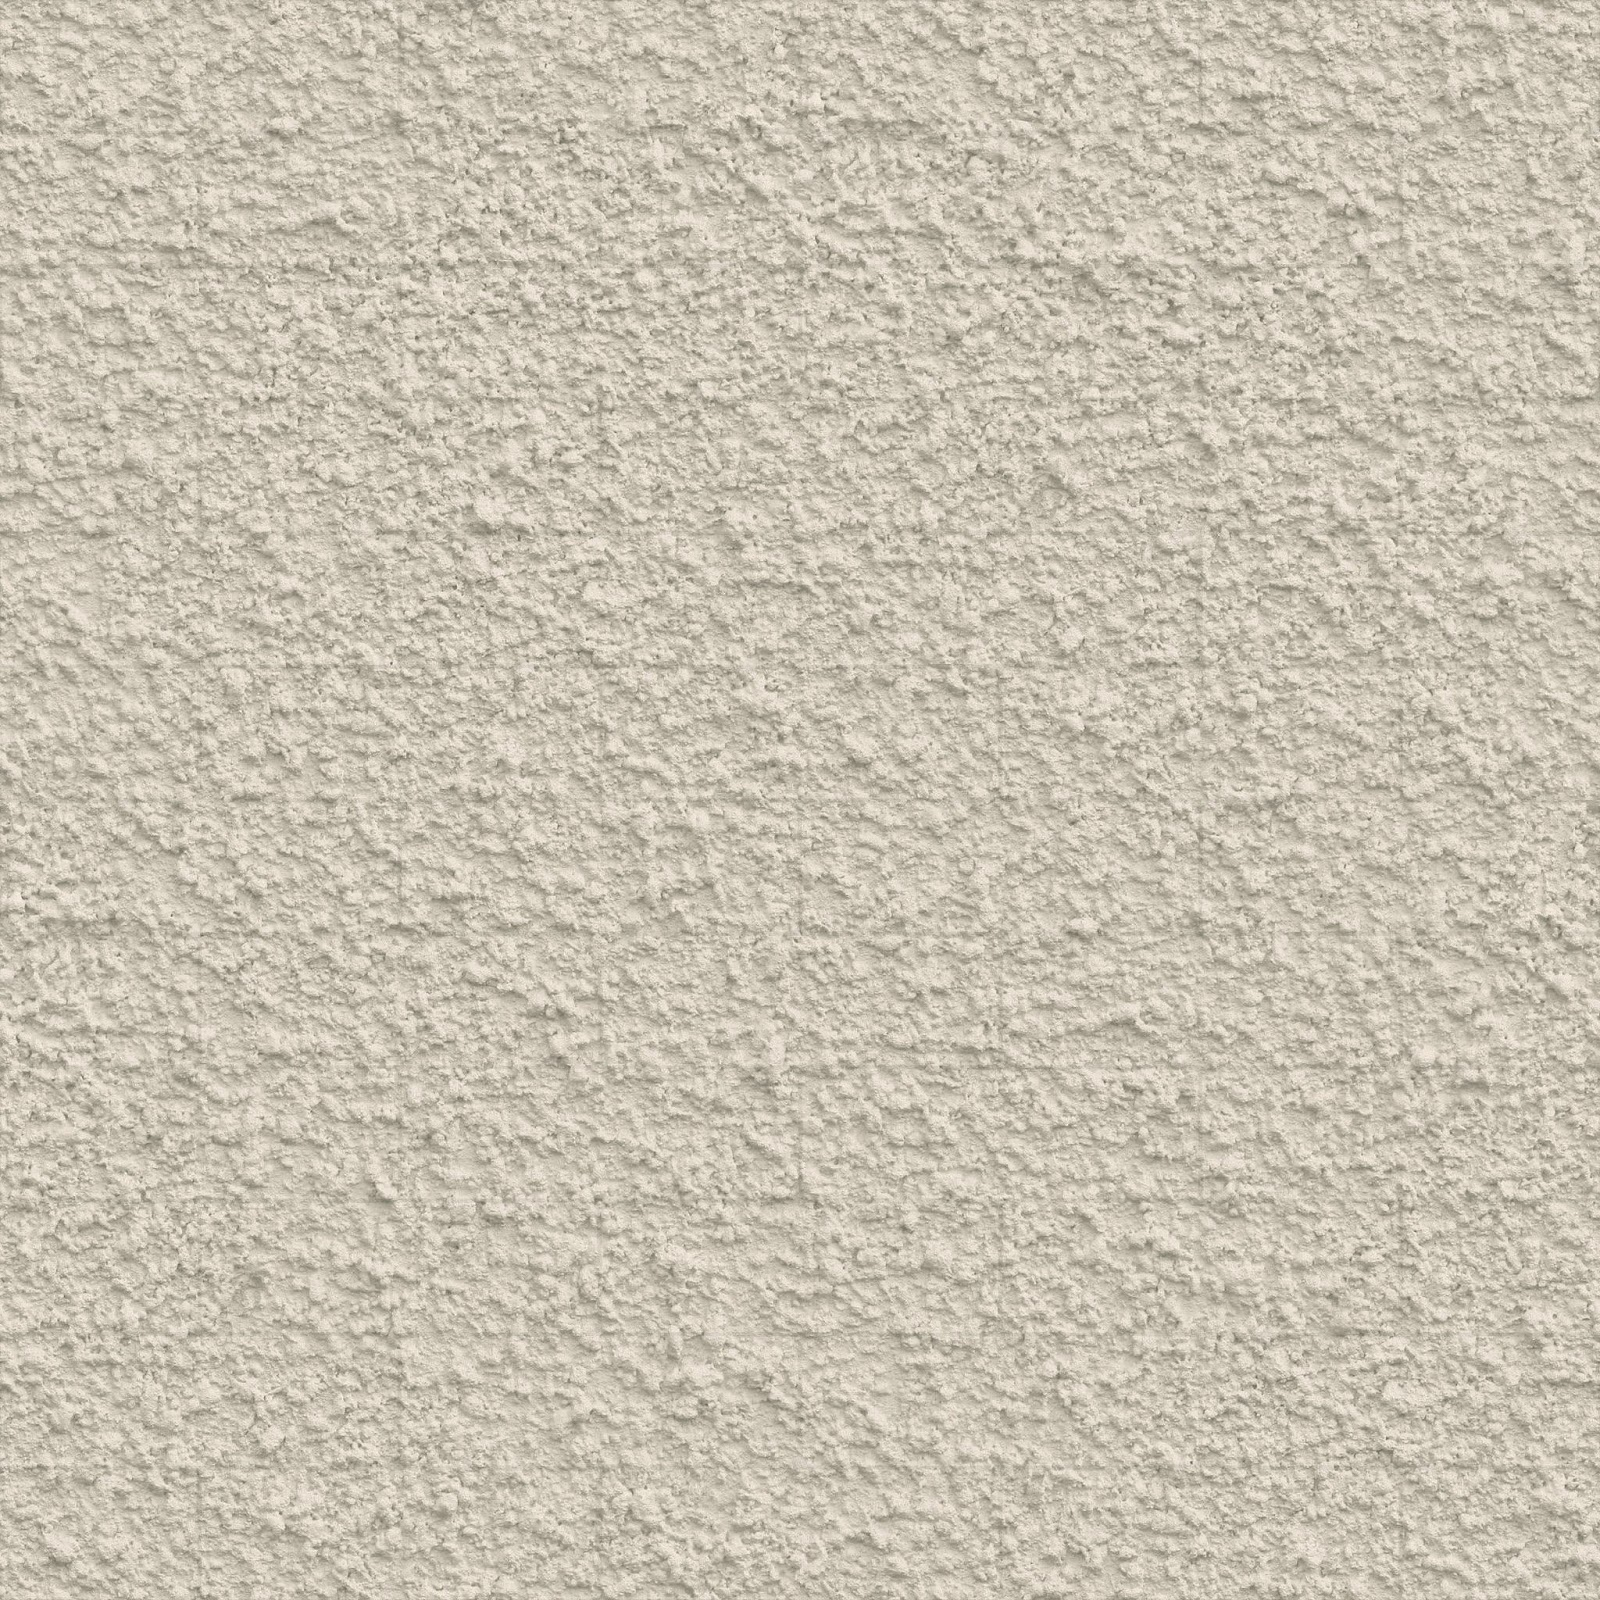 Best Texture For Walls High Resolution Seamless Textures Free Seamless Stucco